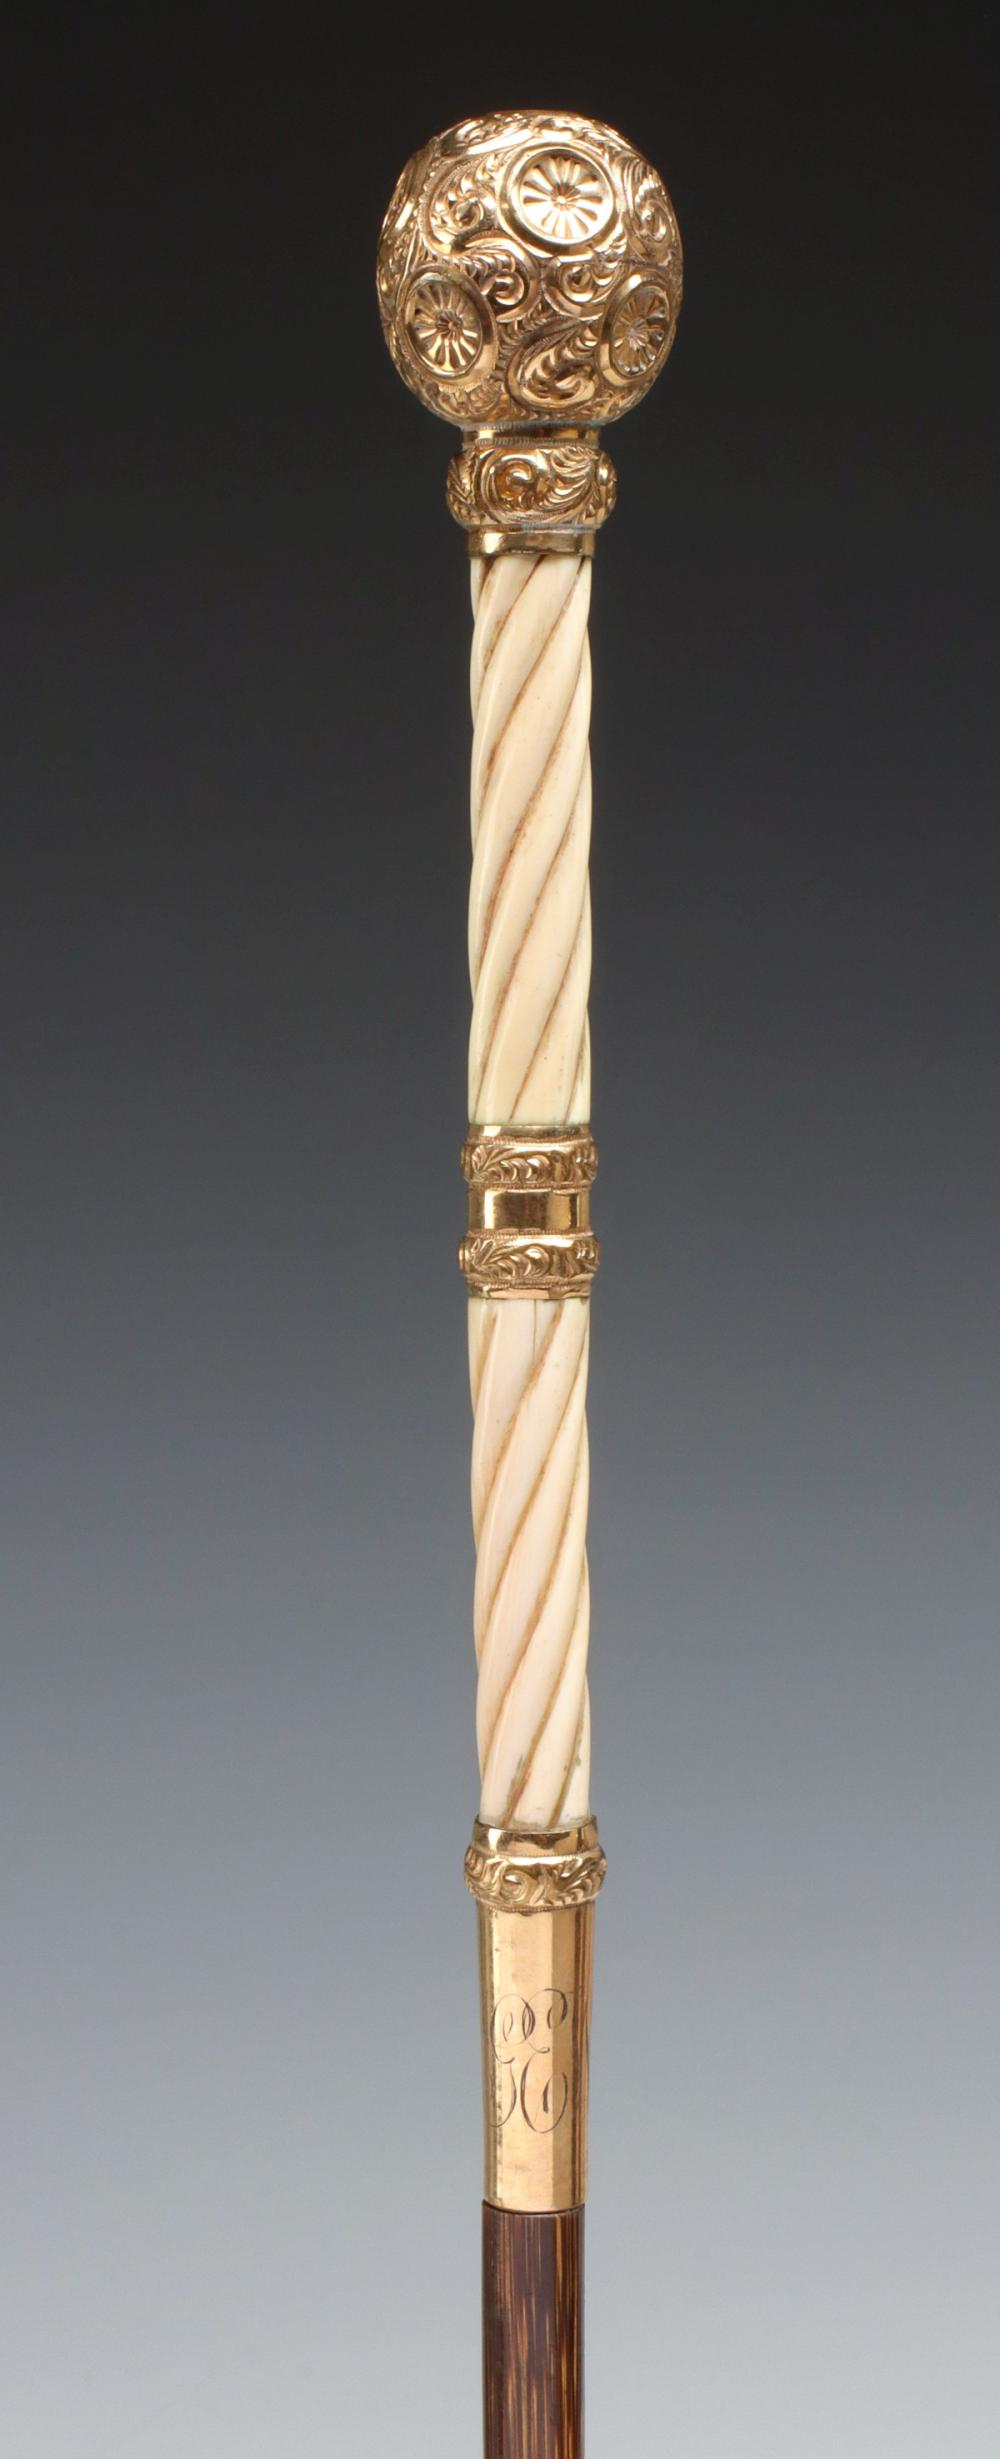 A GOLD FILLED, IVORY AND PARTRIDGE WOOD DAGGER CANE